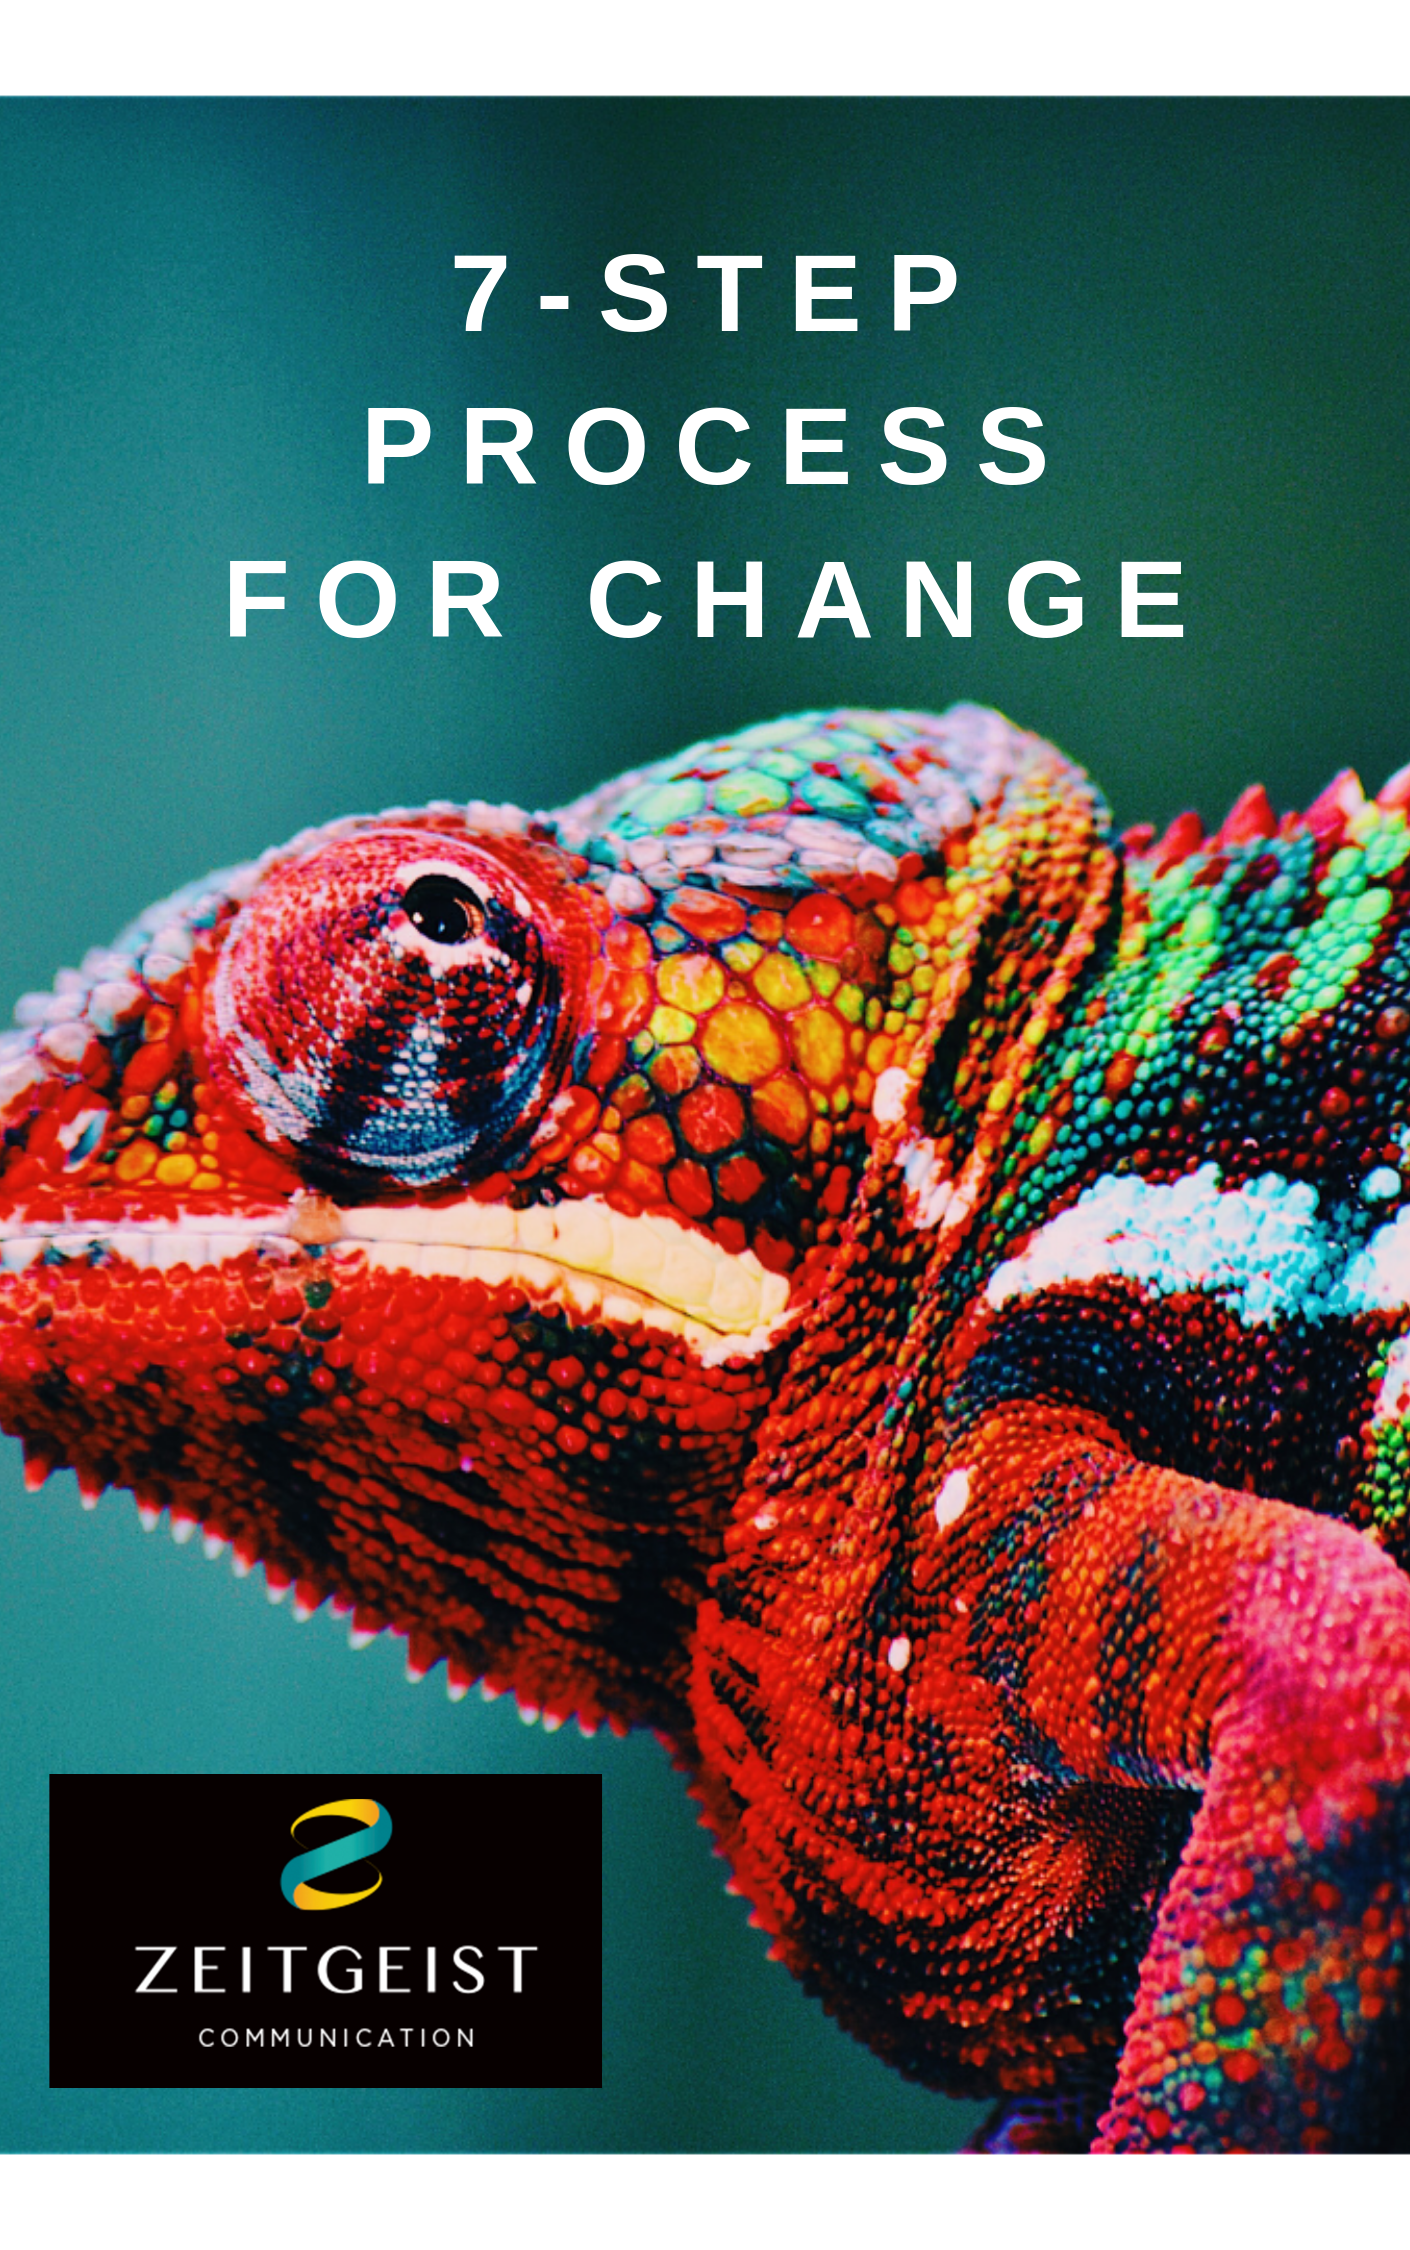 Download your free copy of the 7-Step Process for Change below! -